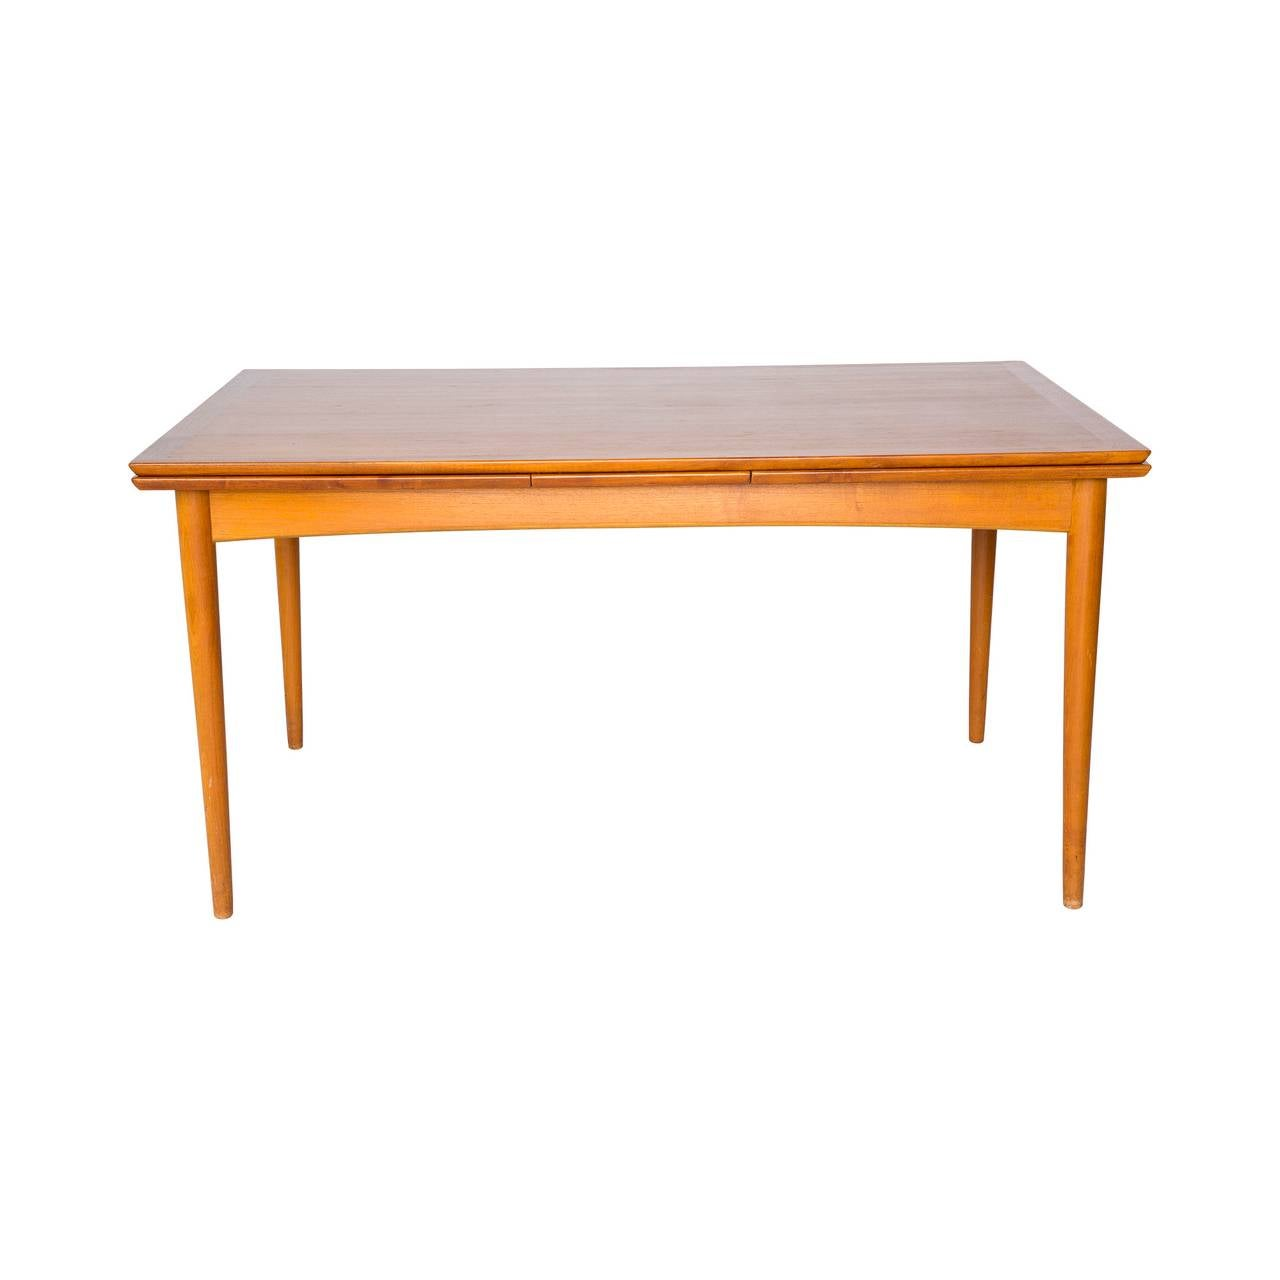 Danish Modern Expandable Teak Dining Table at 1stdibs : teakdiningtable3l from www.1stdibs.com size 1280 x 1280 jpeg 39kB